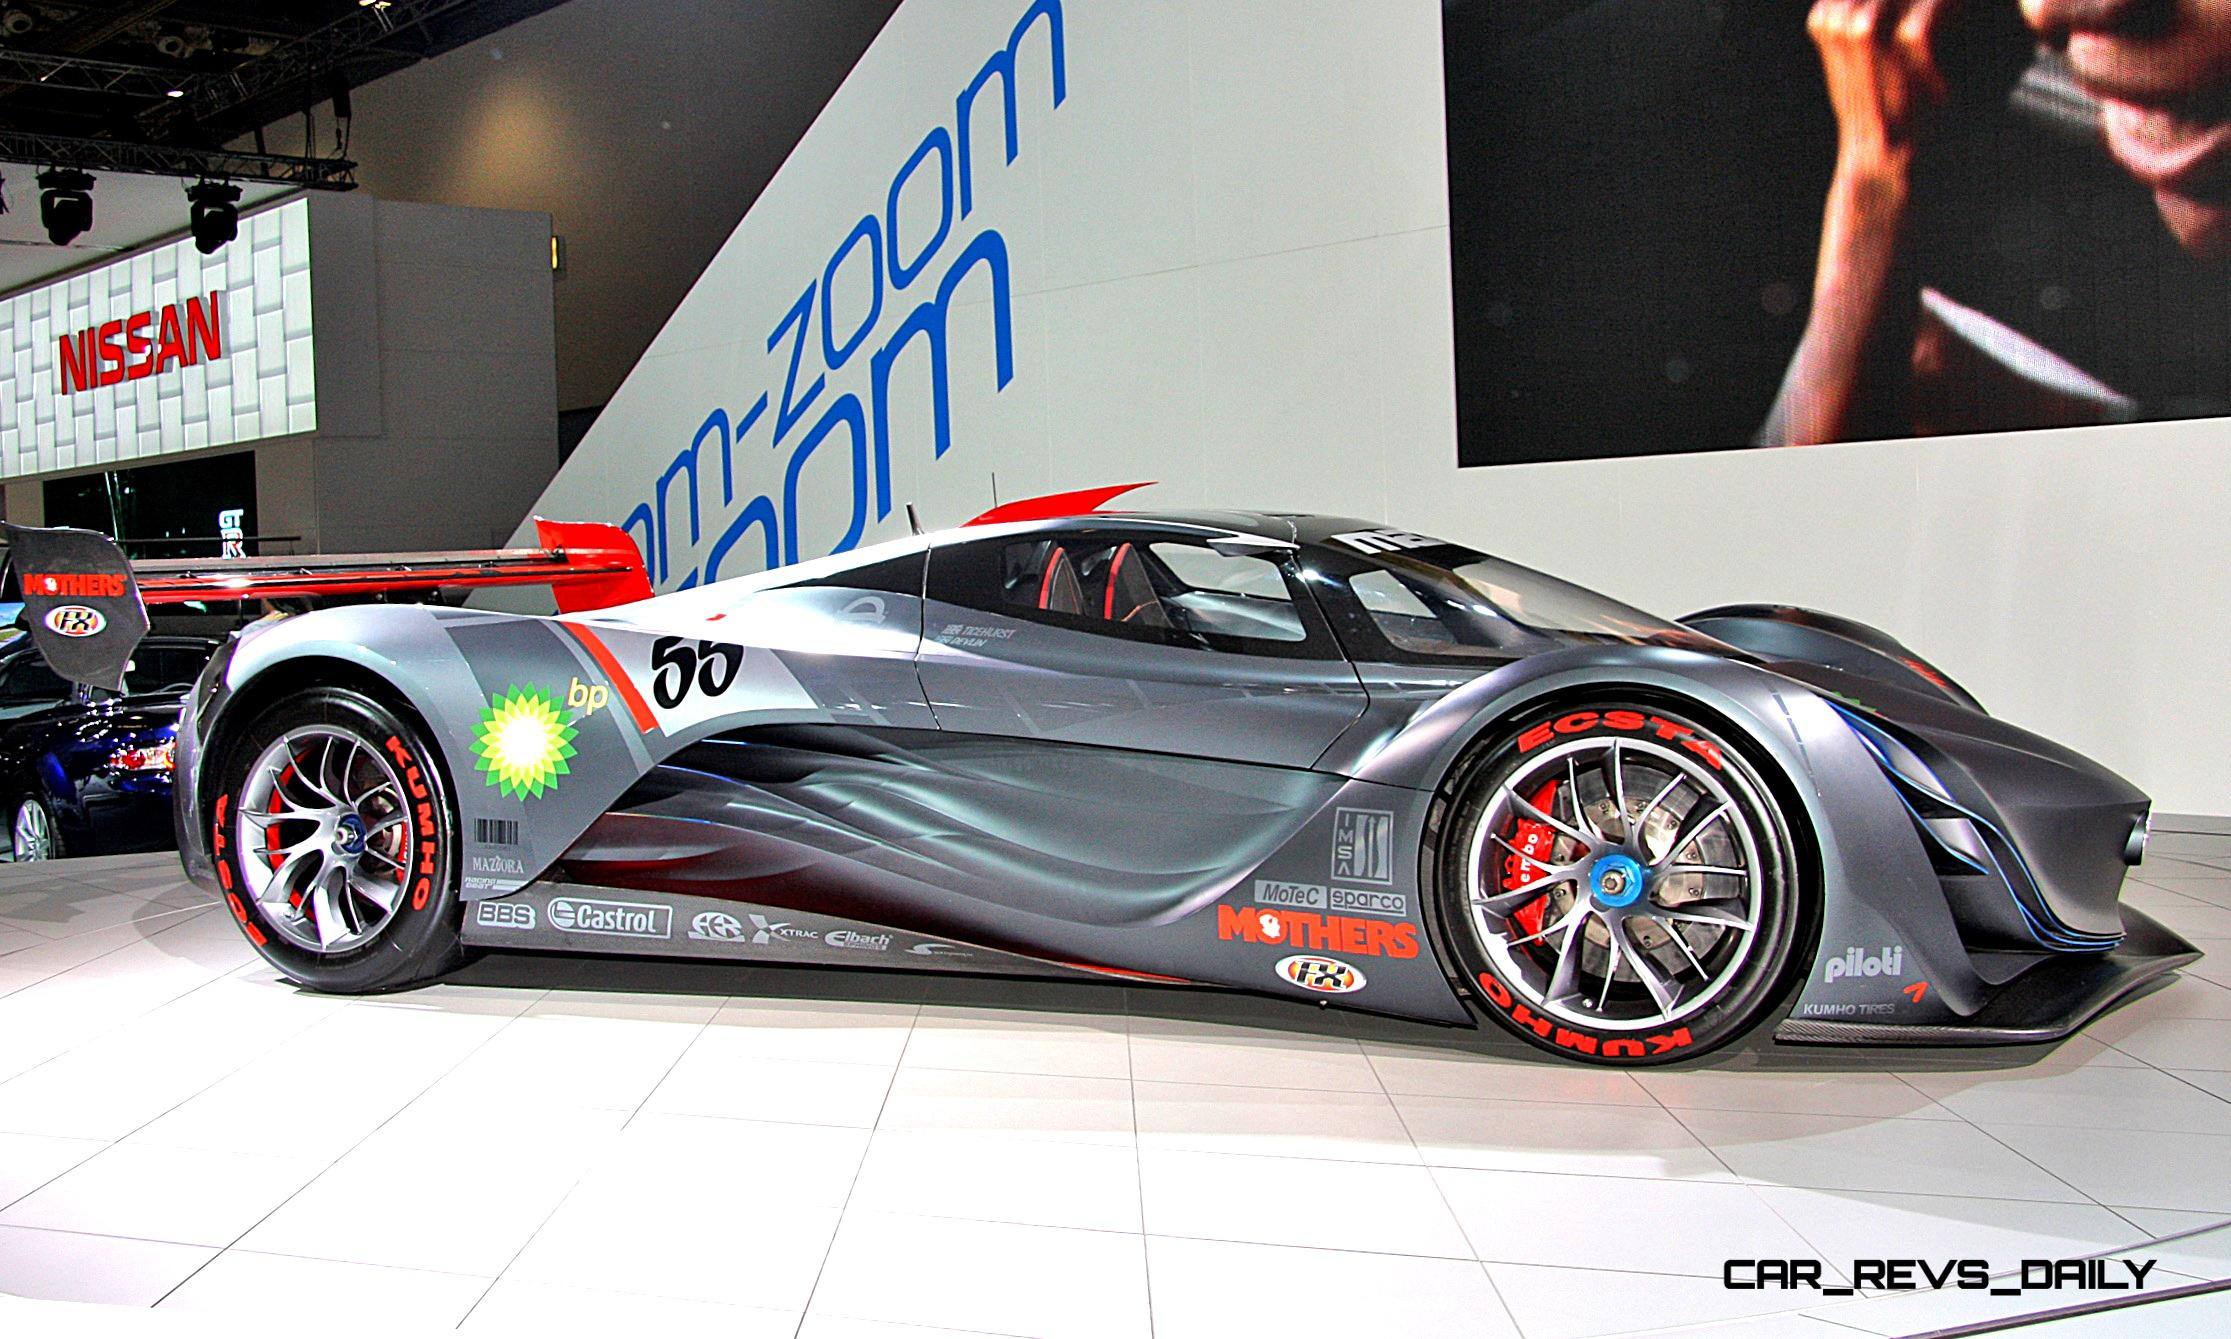 Concept Flashback 2008 Mazda Furai Is 450hp Rotary Lmp2 Car That Met Two Tragic Ends